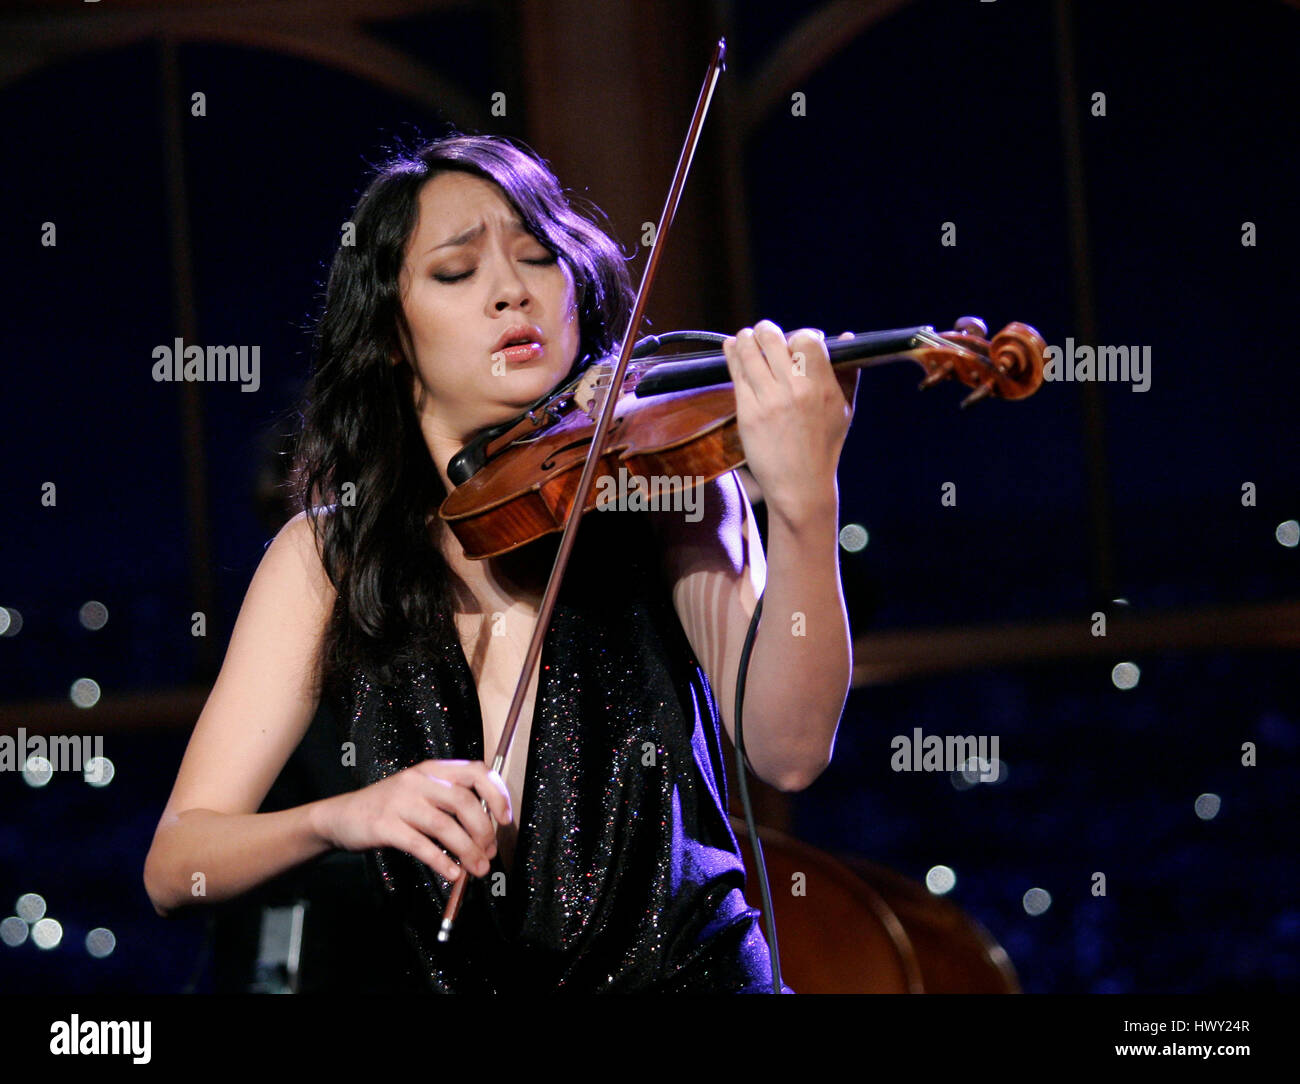 Violinist Lucia Micarelli performs during a segment of  The Late Late Show  with Craig Ferguson  at CBS Television City in Los Angeles 001c83aa1a5